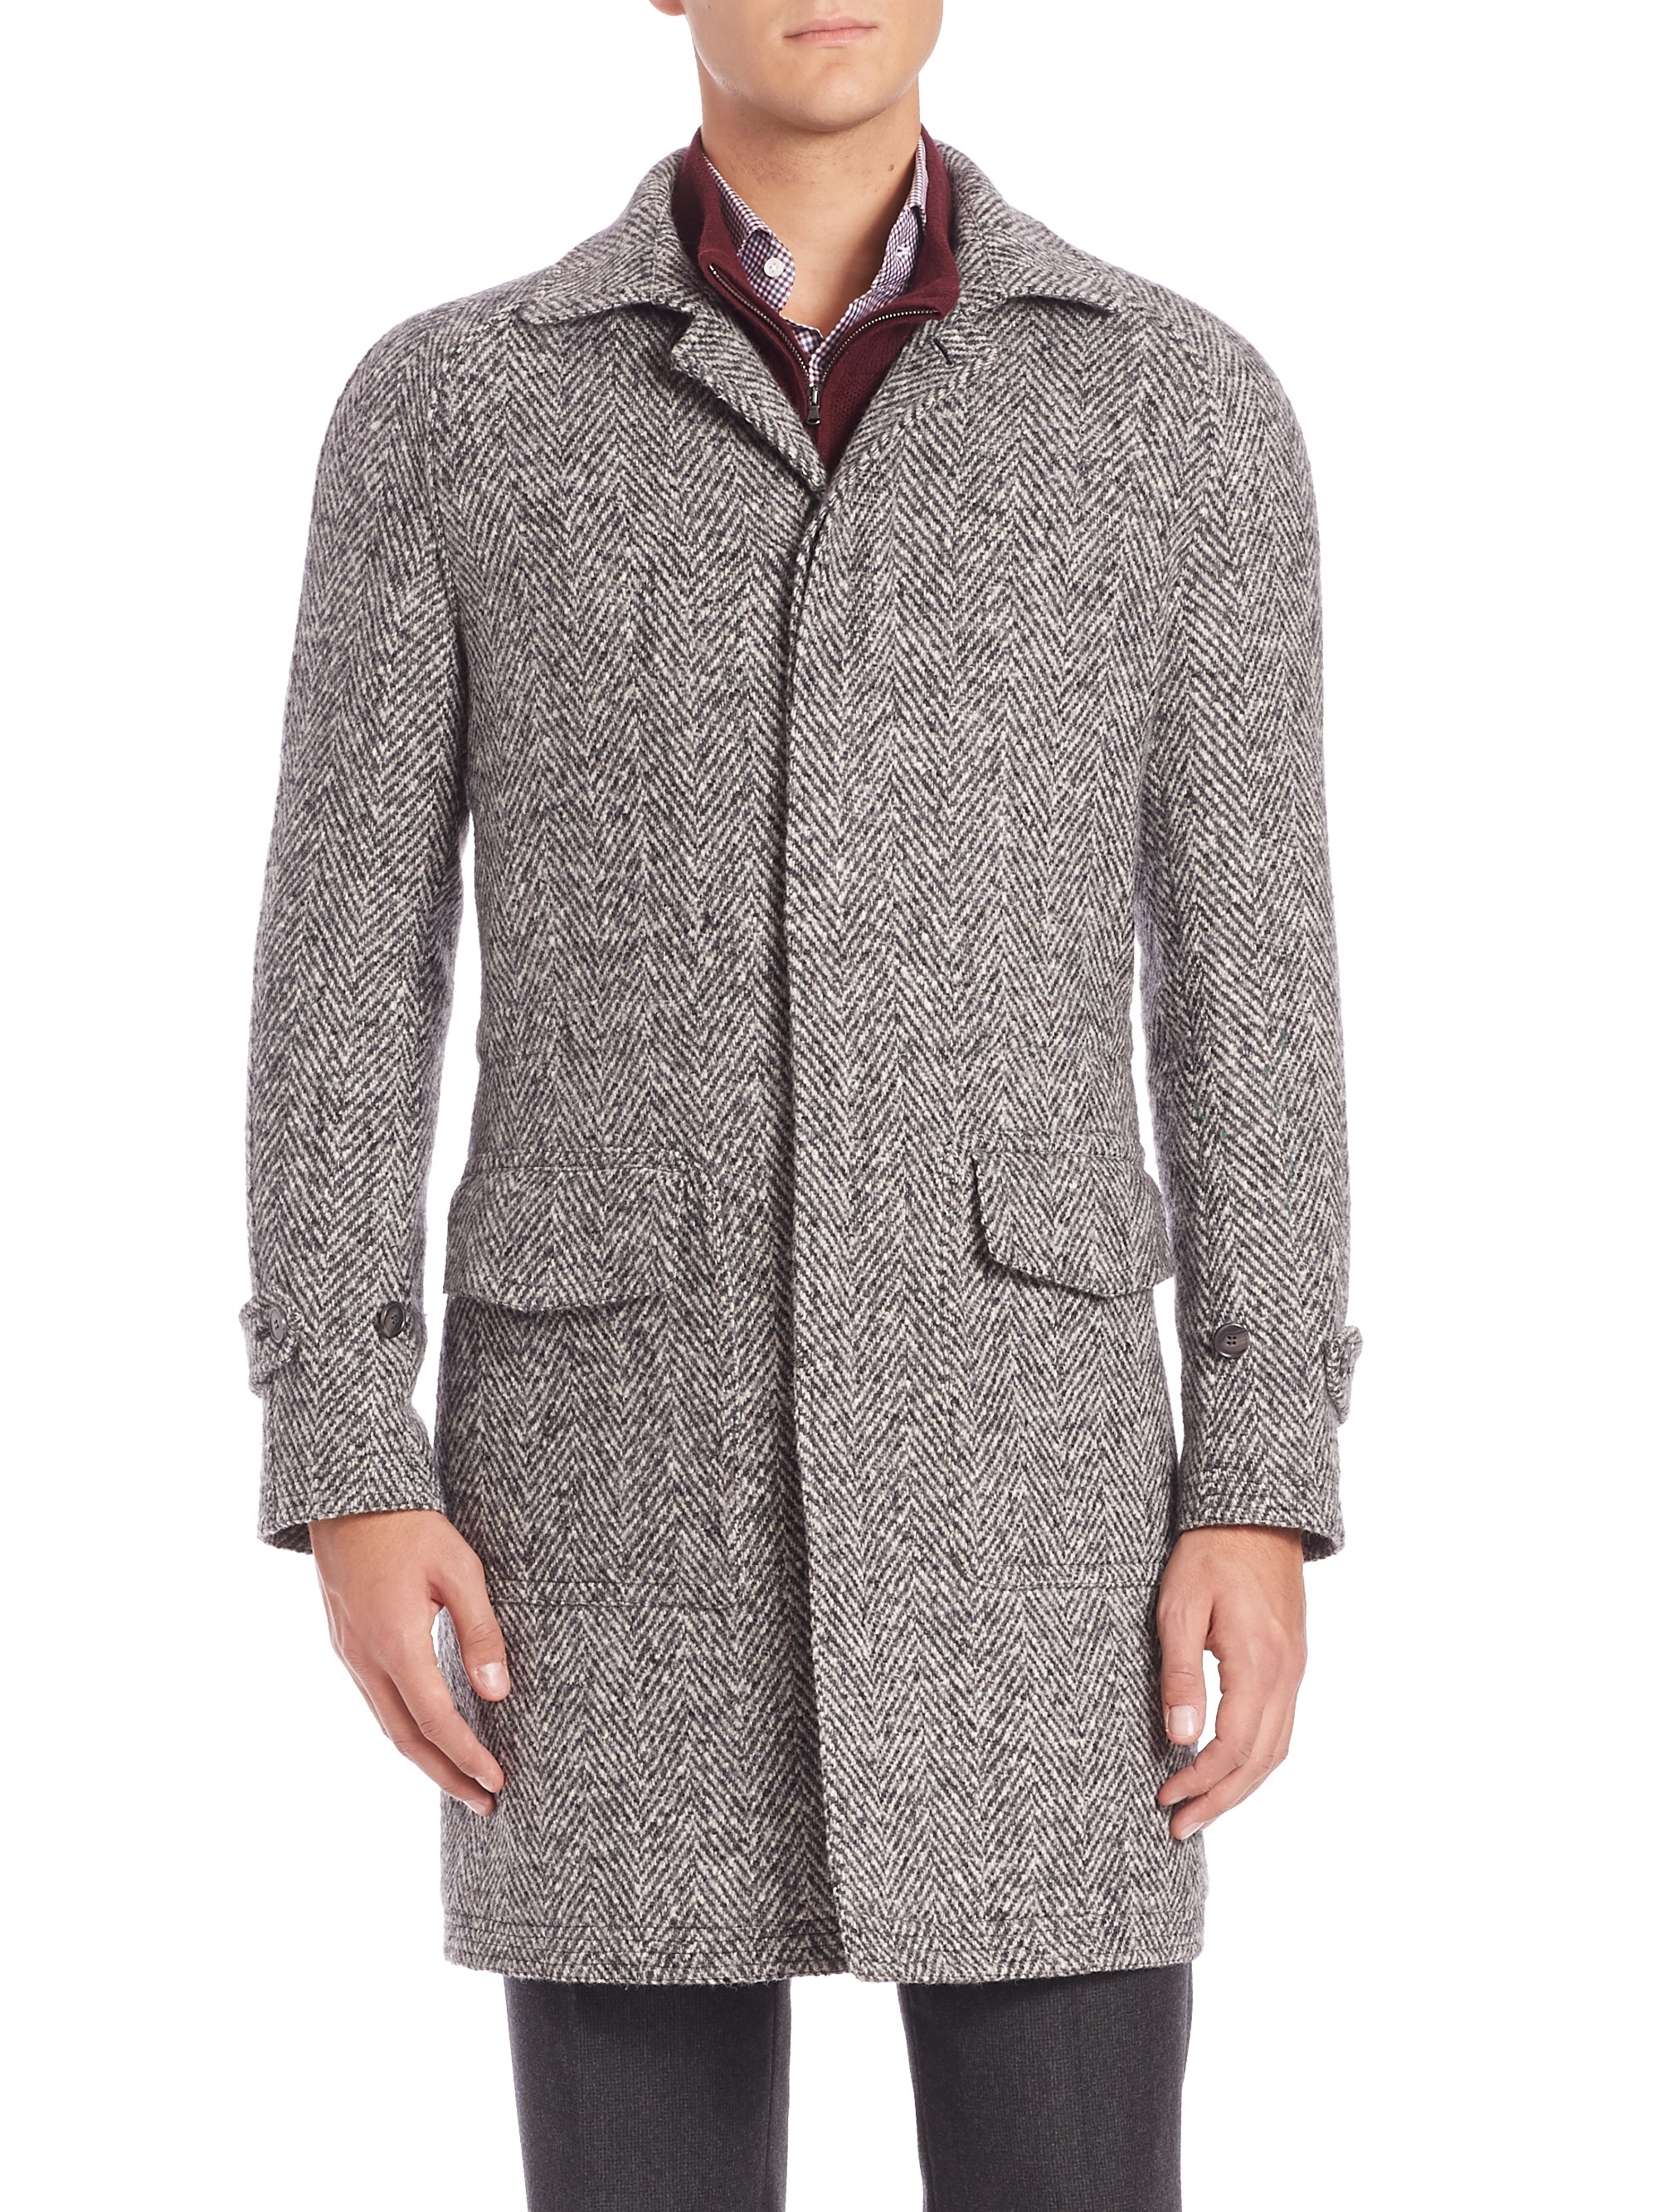 Eidos Donegal Herringbone Coat in Gray for Men | Lyst